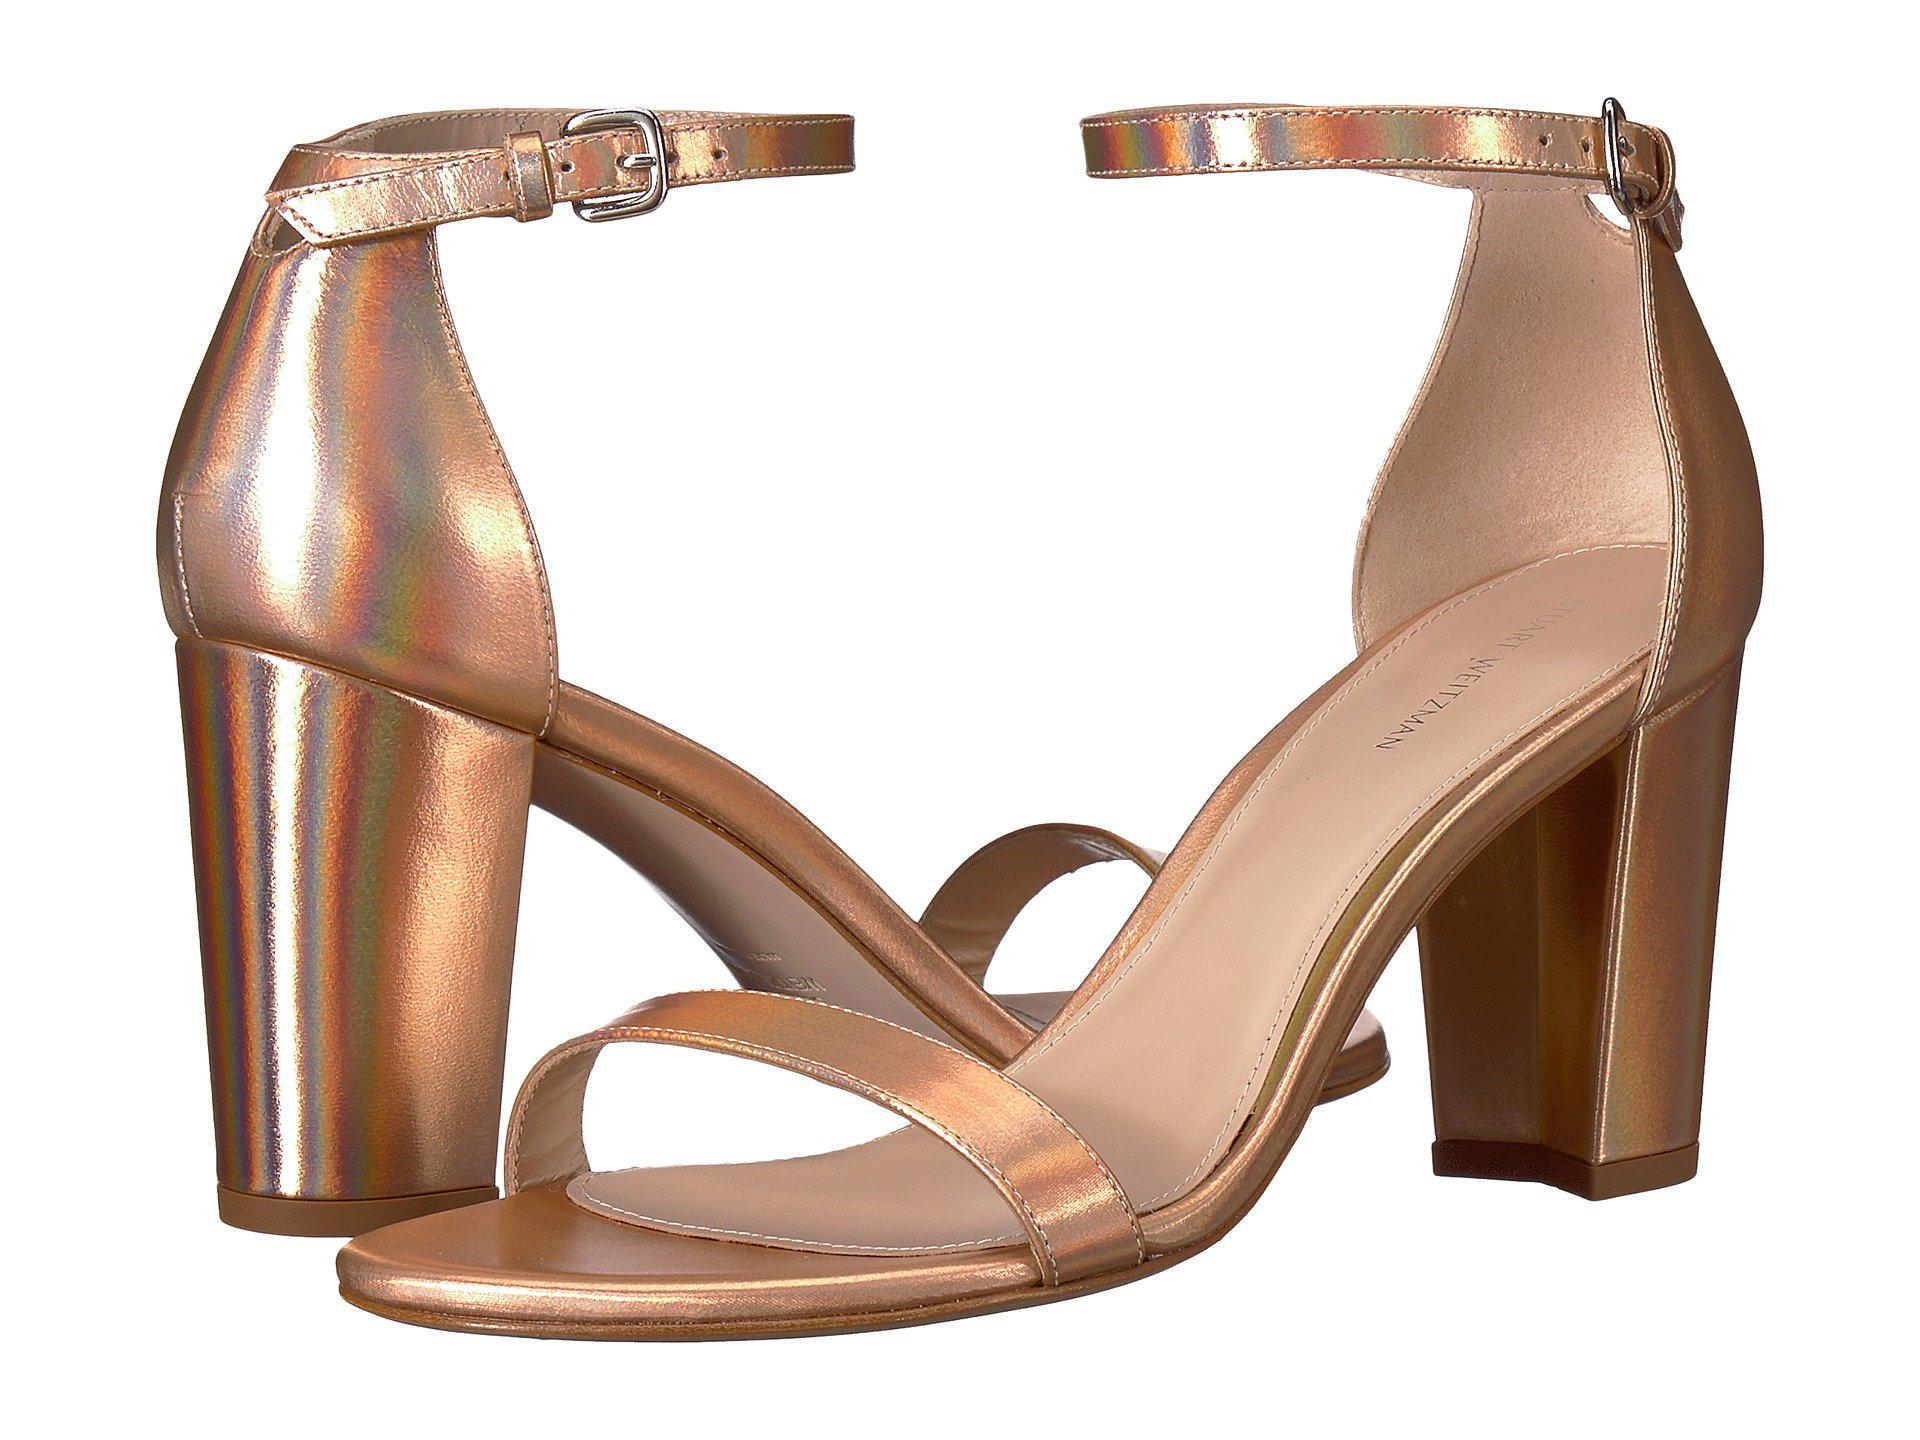 ecbbe44f892 Lyst - Stuart Weitzman Nearlynude in Natural